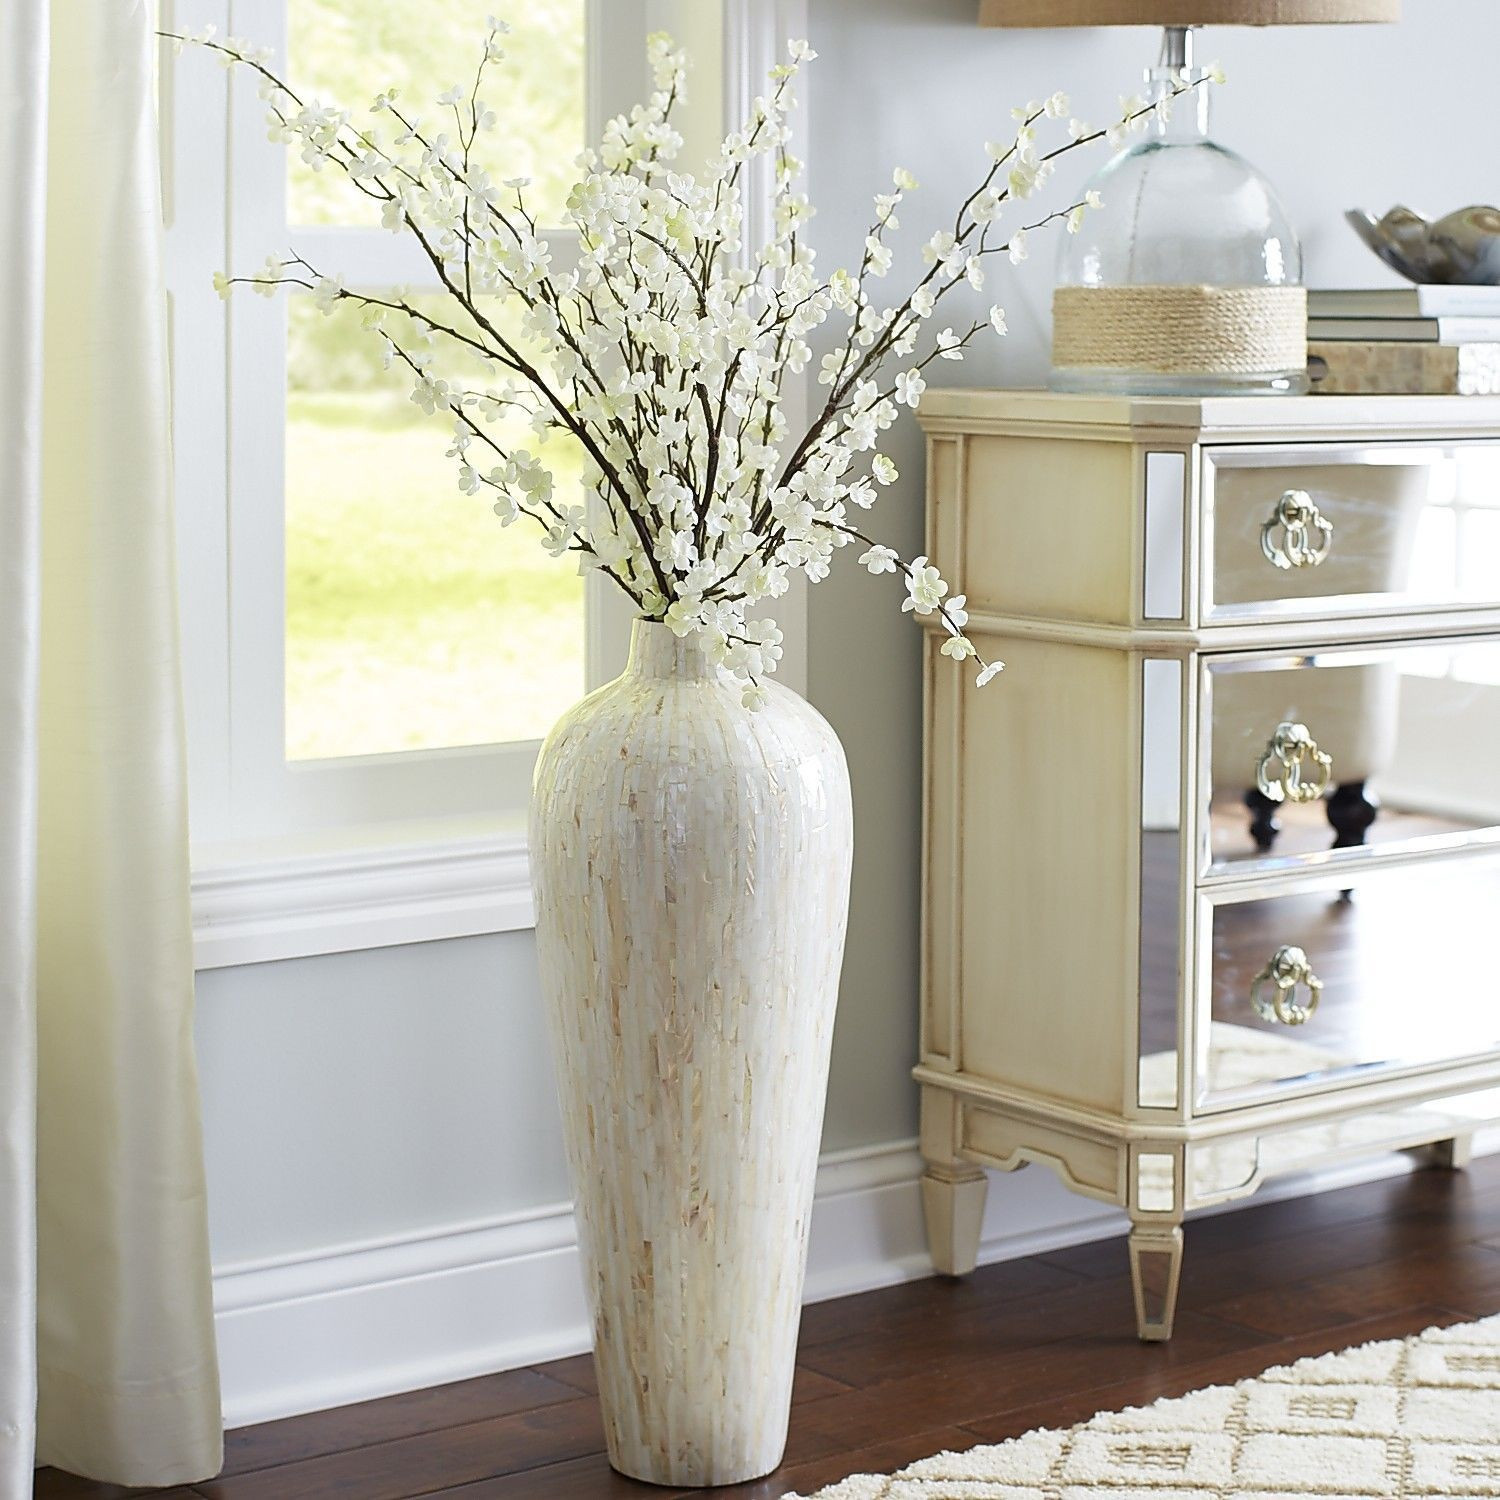 luxury vases for sale of where to buy floor vases awesome decorative floor vases fresh d intended for where to buy floor vases awesome decorative floor vases fresh d dkbrw 5749 1h vases tall